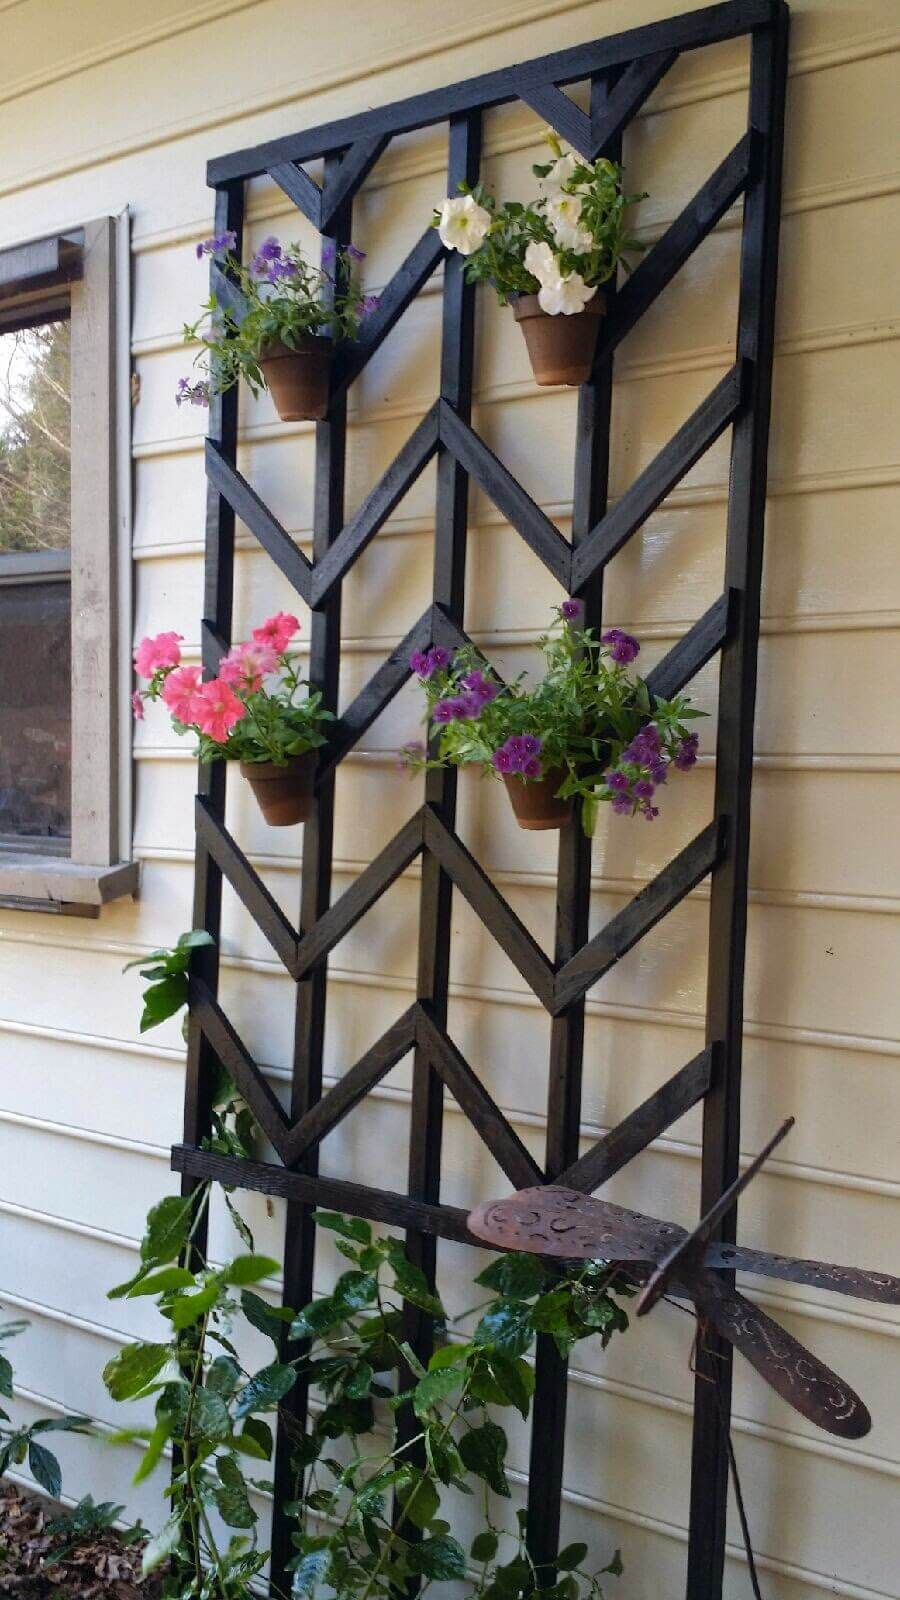 Easy Garden Trellis Ideas Part - 42: 24 Easy DIY Garden Trellis Projects You Can Do This Weekend